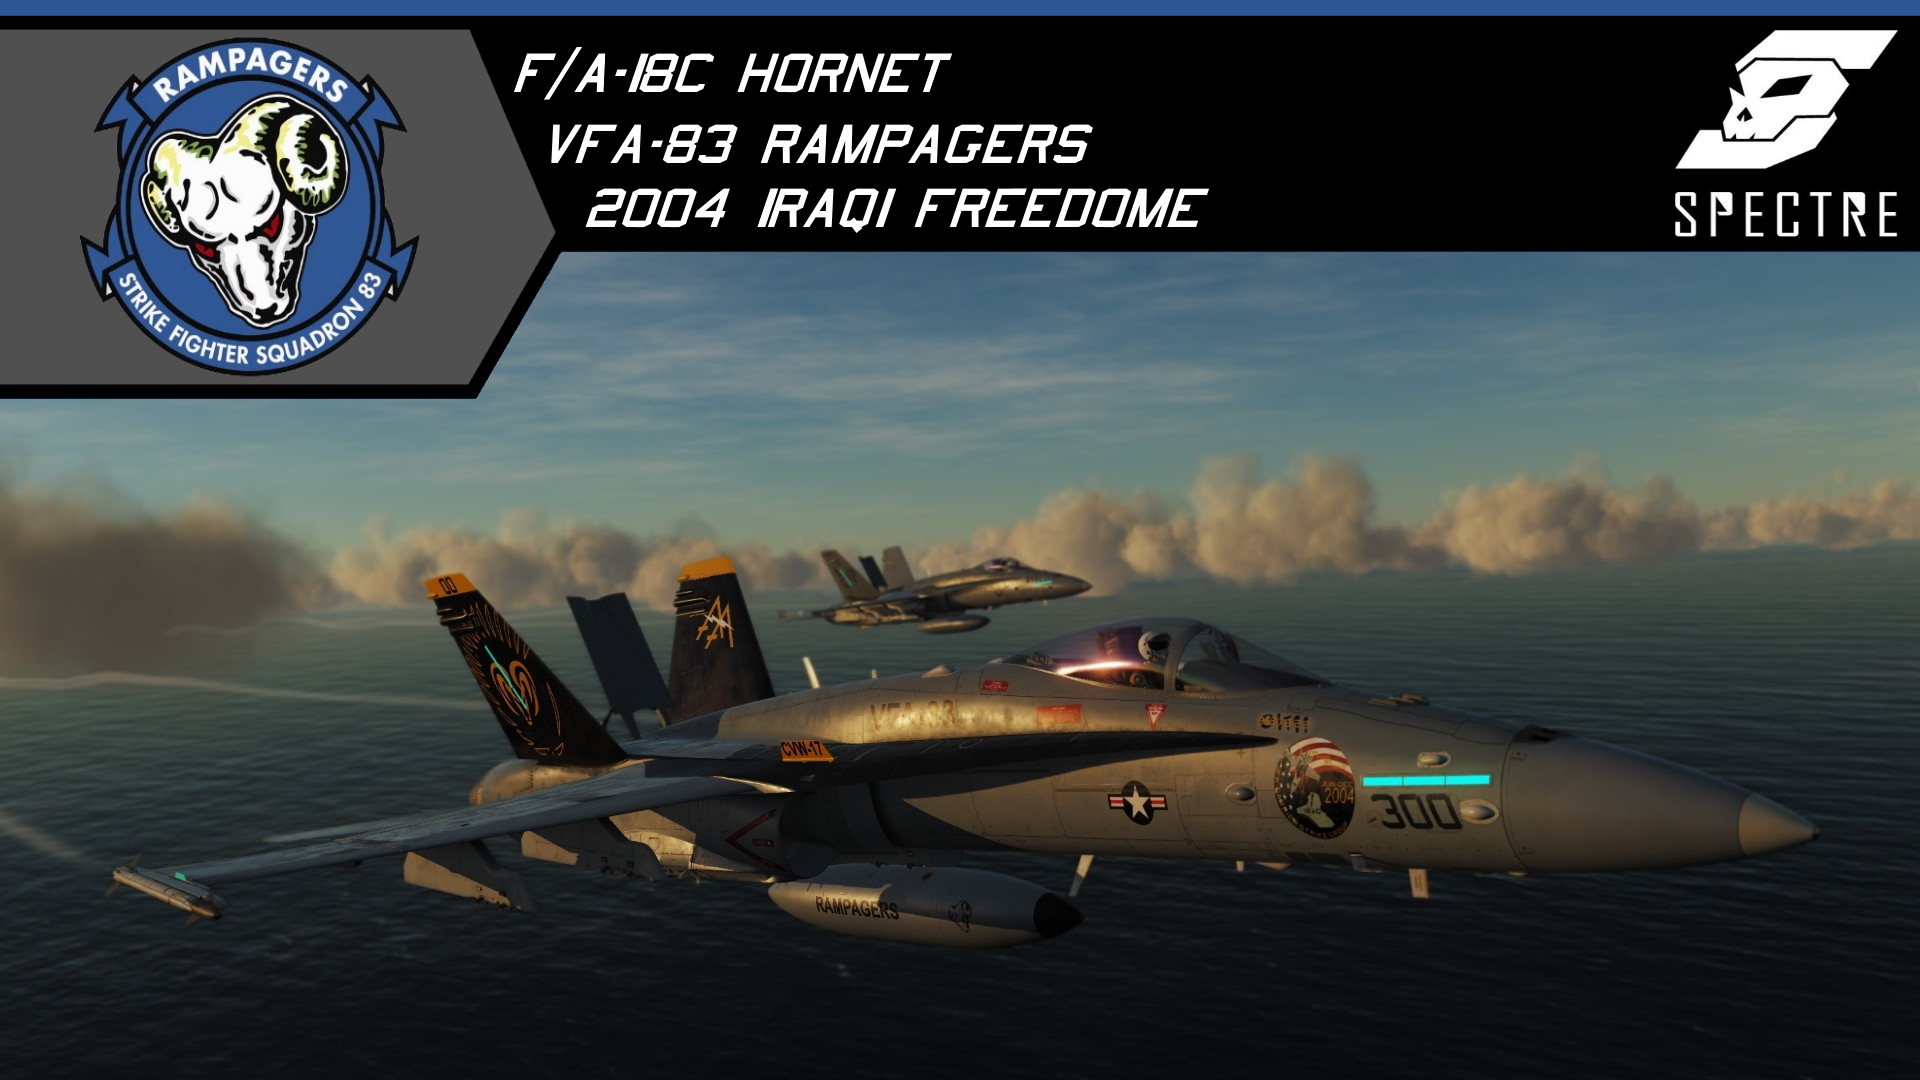 F/A-18C VFA-83 Rampagers Iraqi Freedome CAG and high visibility